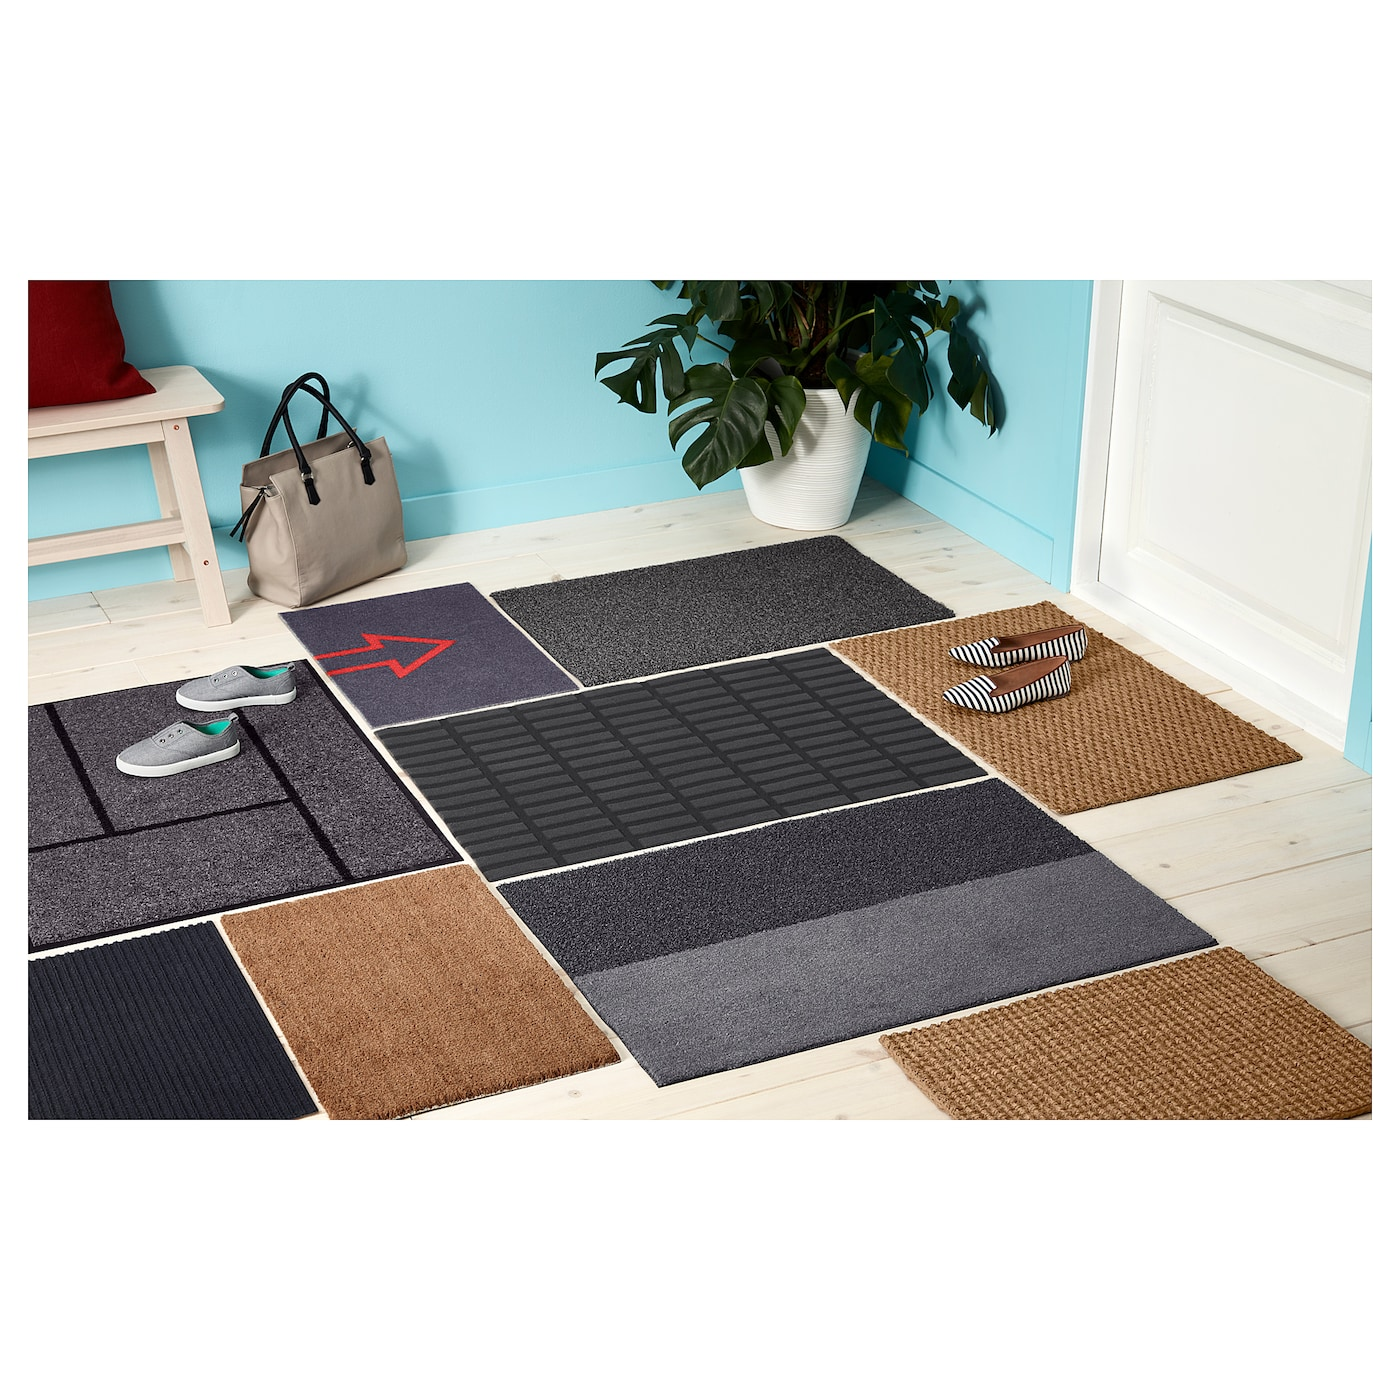 IKEA SEJET door mat The backing keeps the door mat firmly in place and reduces the risk of slipping.